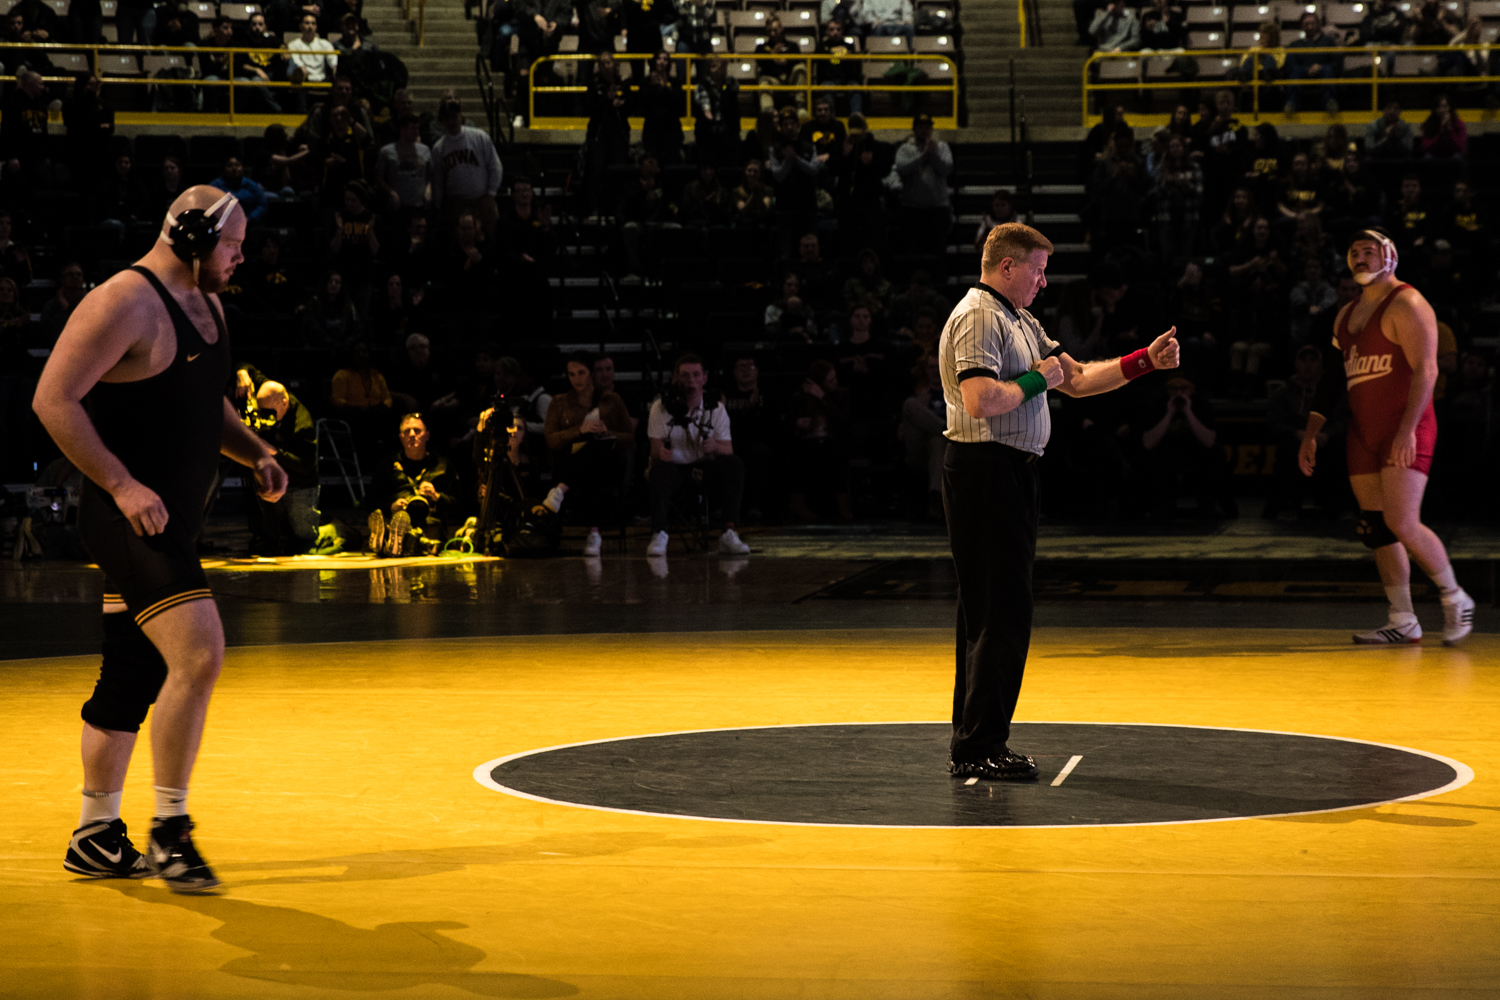 Iowa%27s+No.+6+Sam+Stoll+wrestles+Indiana%27s+Fletcher+Miller+at+285lb+during+a+wrestling+match+between+Iowa+and+Indiana+at+Carver-Hawkeye+Arena+on+Friday%2C+February+15%2C+2019.+The+Hawkeyes%2C+celebrating+senior+night%2C+defeated+the+Hoosiers+37-9.